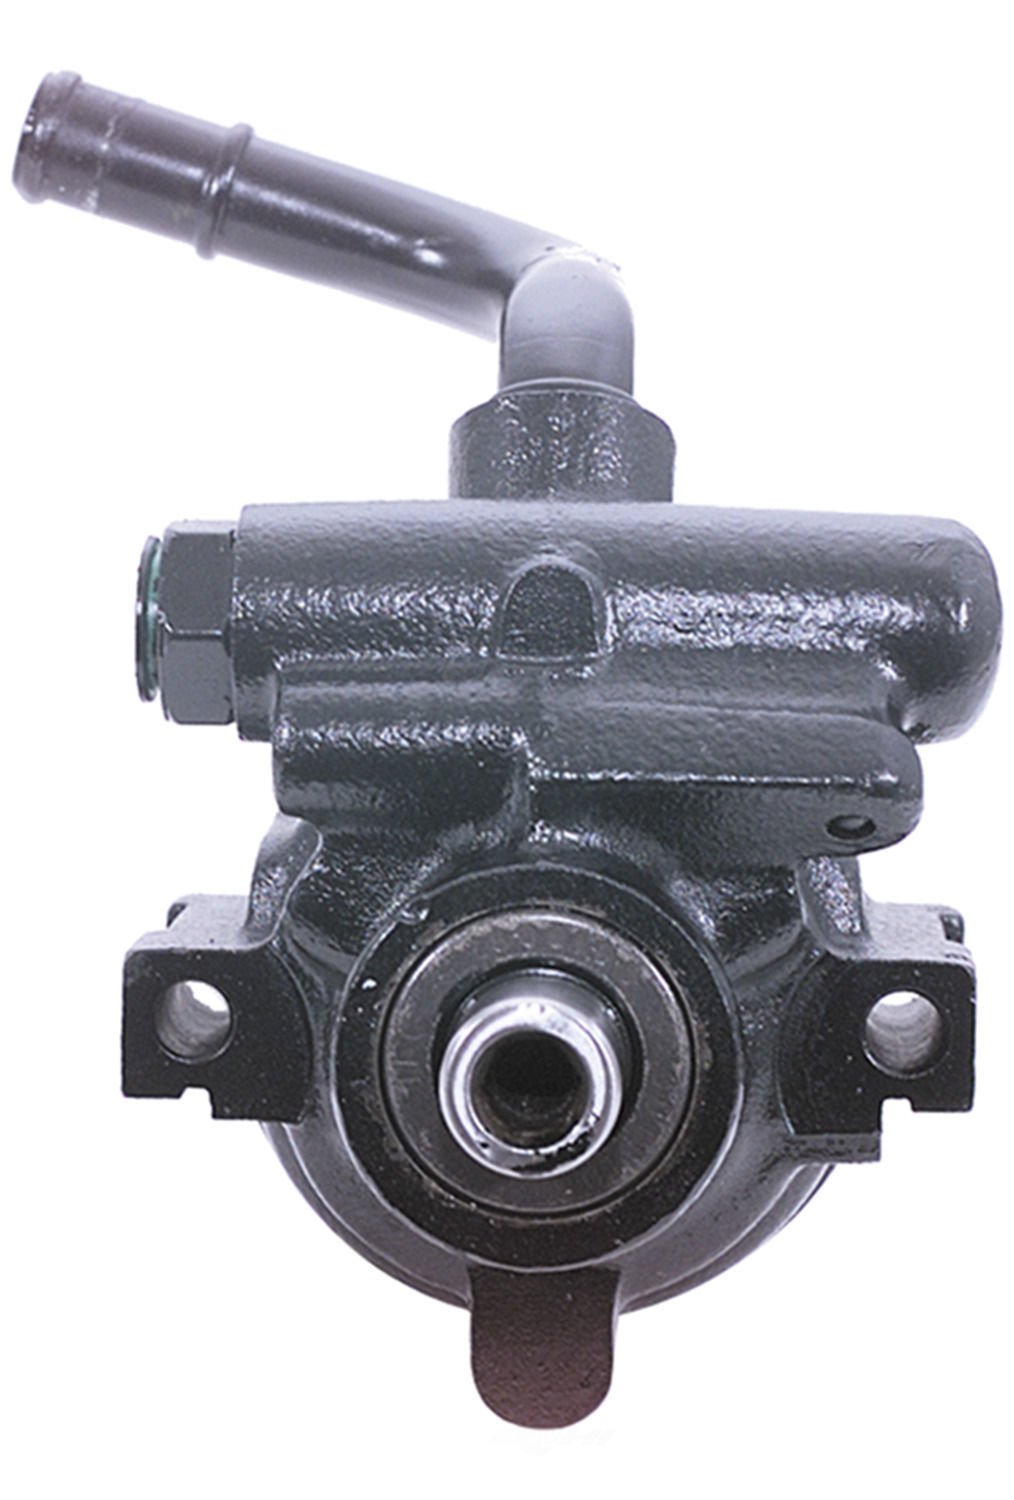 CARDONE/A-1 CARDONE - Remanufactured Power Steering Pump - A1C 20-981